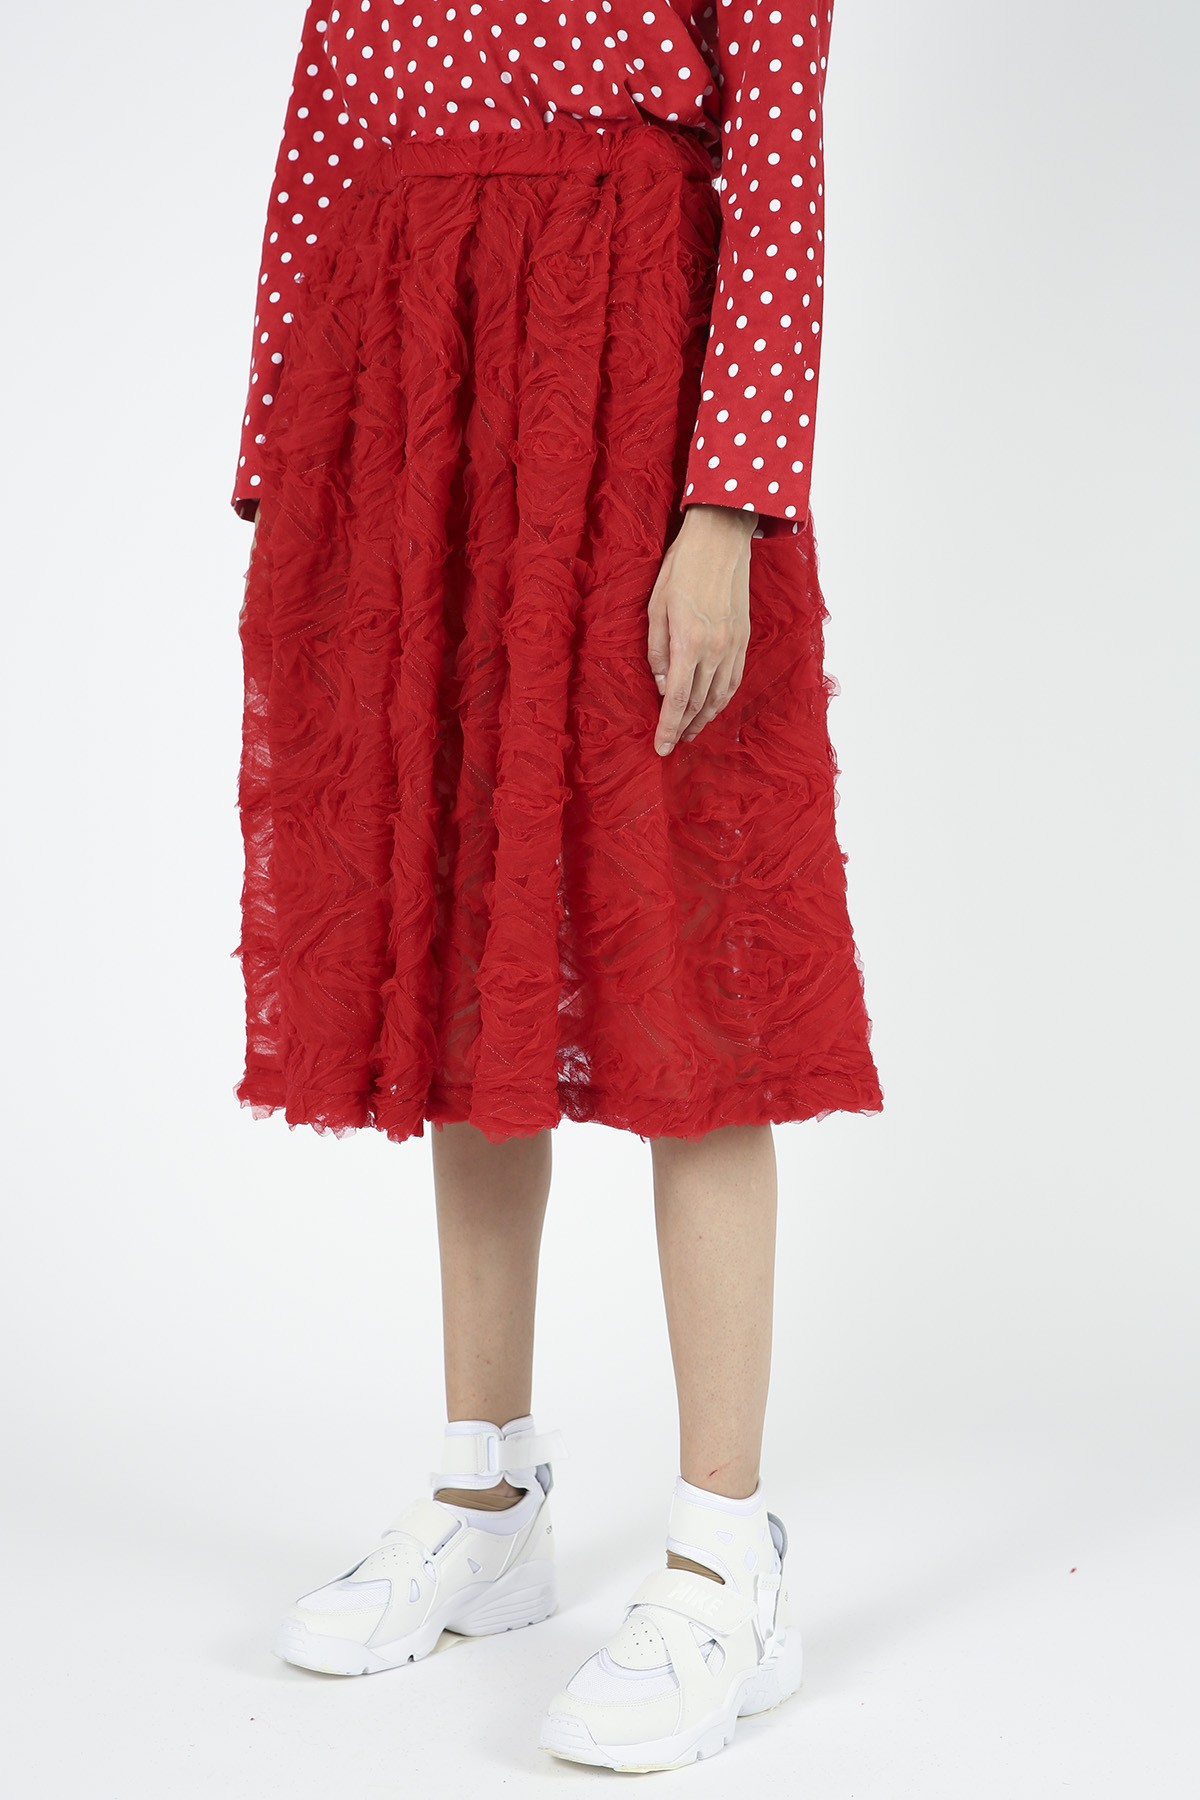 COMME DES GARCONS GIRL - COMME DES GARCONS GIRL RED SKIRT WITH APPLIQUE